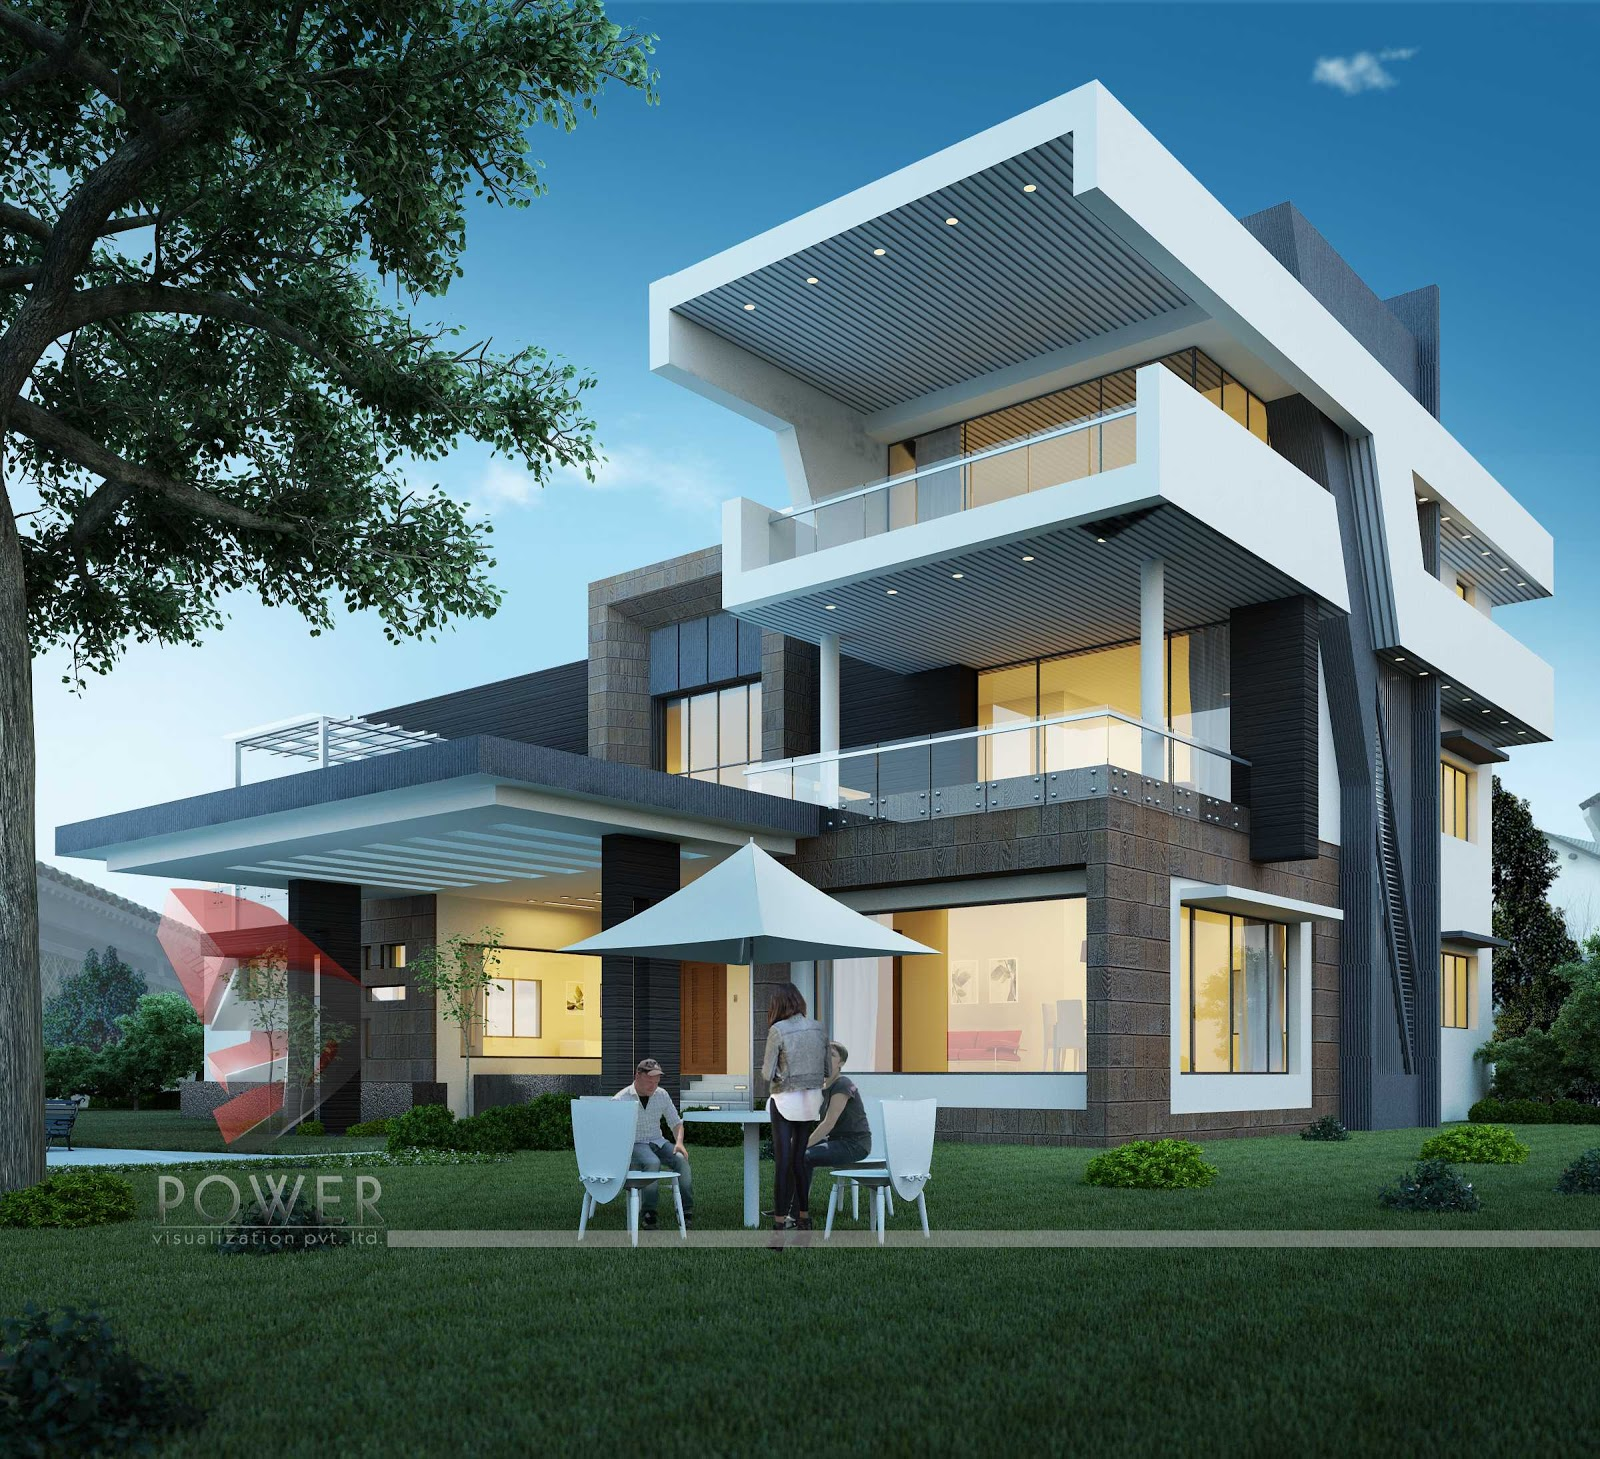 Ultra modern home designs home designs october 2012 for Modern house blueprints